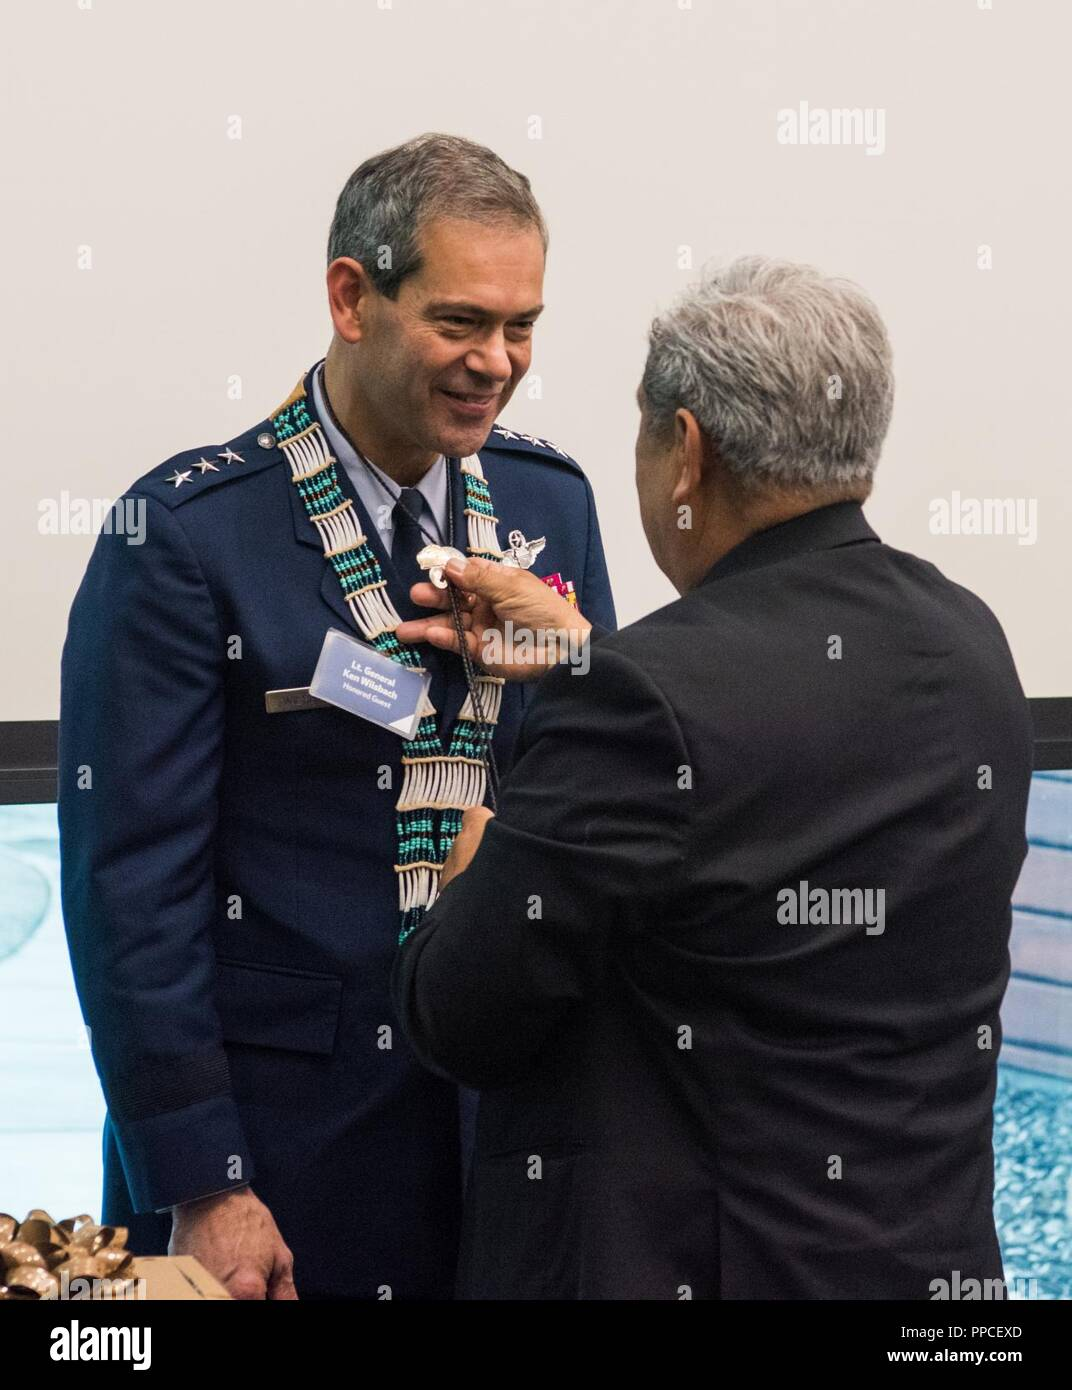 An Alaskan Federation of Natives council member presents a bolo tie to U.S. Air Force Lt. Gen. Ken Wilsbach, commander of Alaskan NORAD Region, Alaskan Command and Eleventh Air Force, during a Native Alaska naming ceremony at the Fireweed Convention Center in Anchorage, Alaska, Aug. 21, 2018. AFN hosted the unique event honoring Wilsbach for his service and involvement with Native Alaskan communities during his tenure in Alaska. It marked the first time in Alaska Native history a U.S. Armed forces general officer was given multiple Native names. - Stock Image